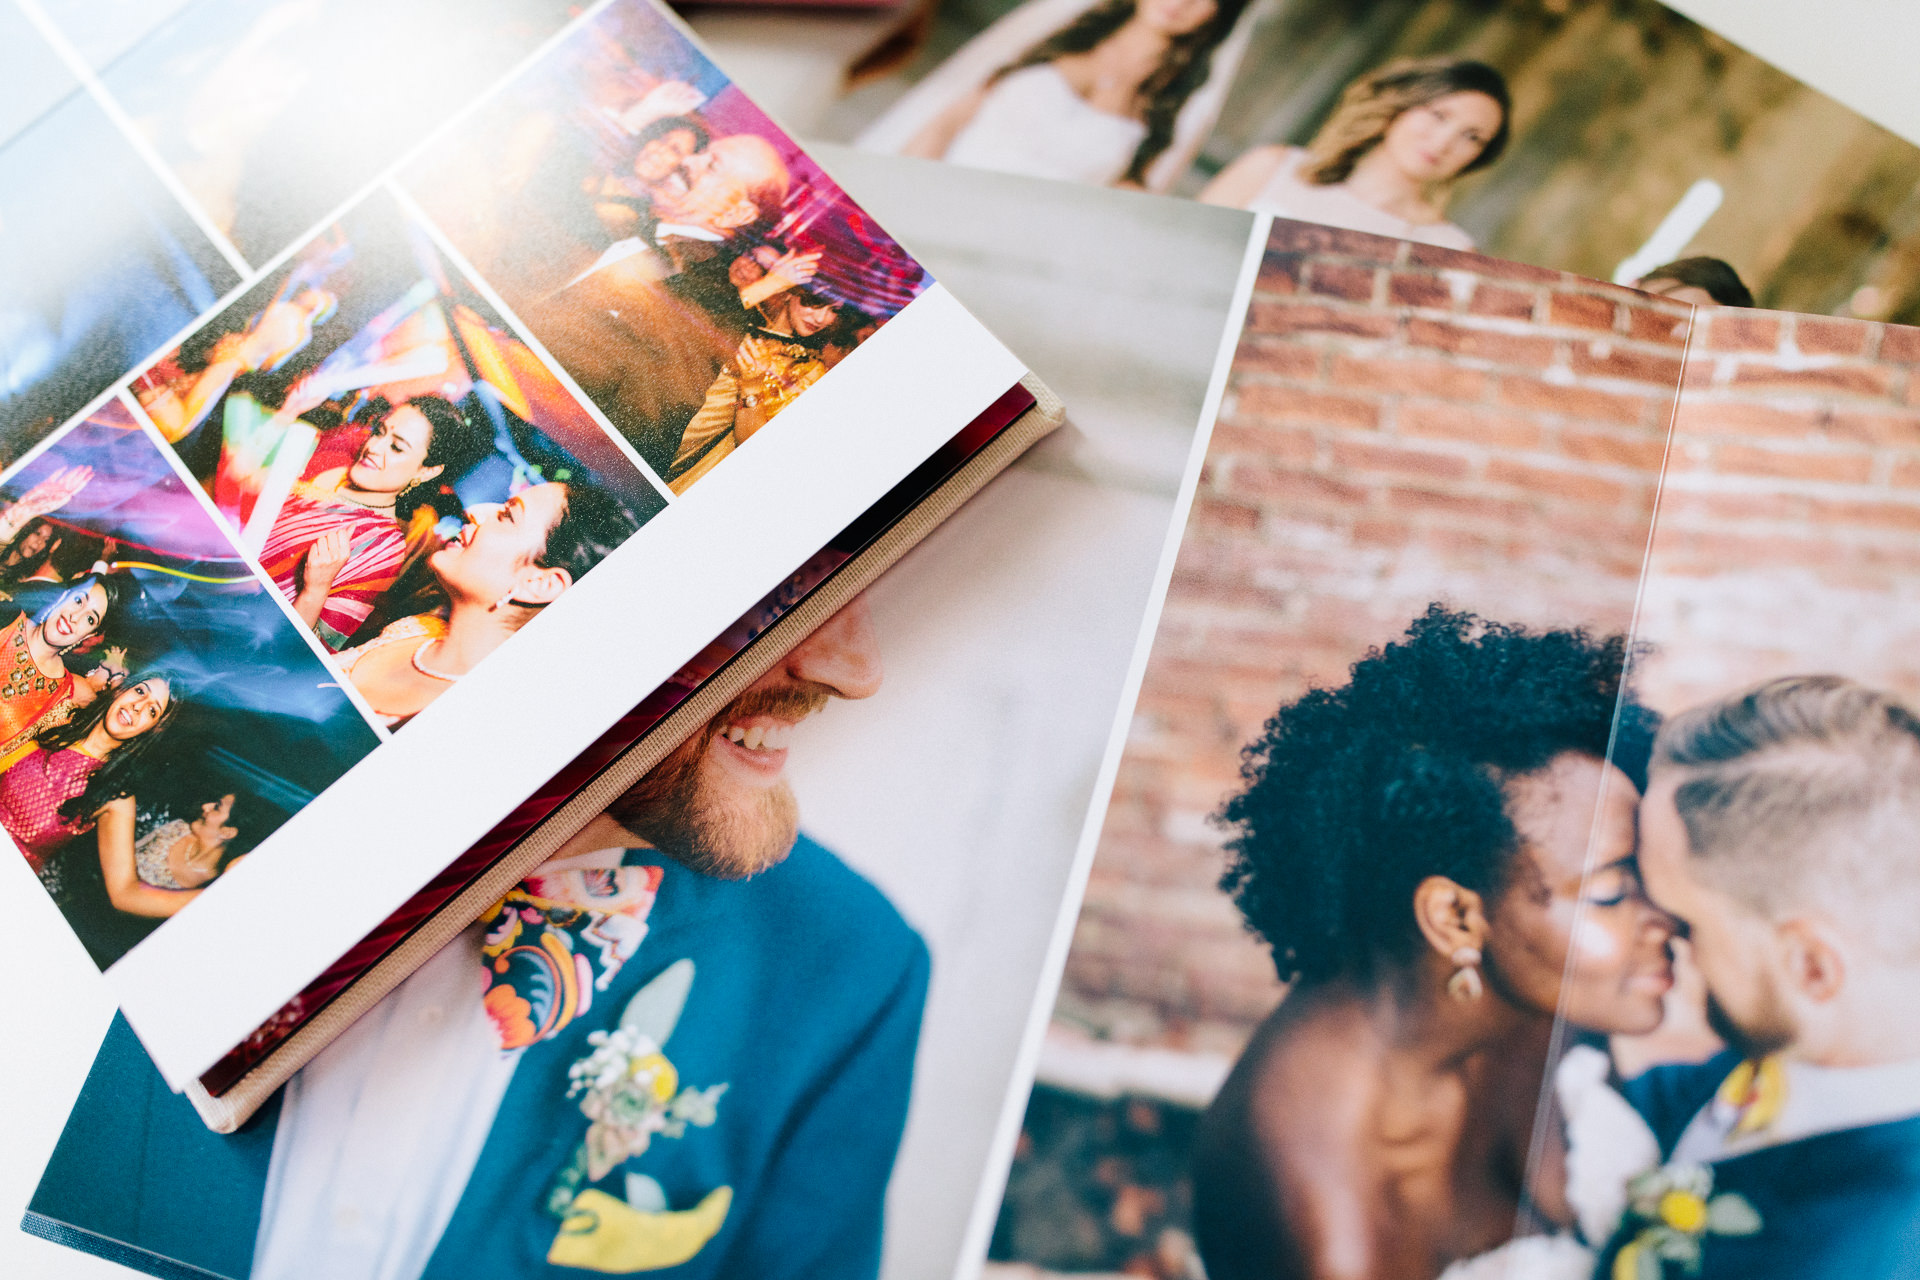 All albums have true photographic prints for exceptional quality. Images layflat across spreads,